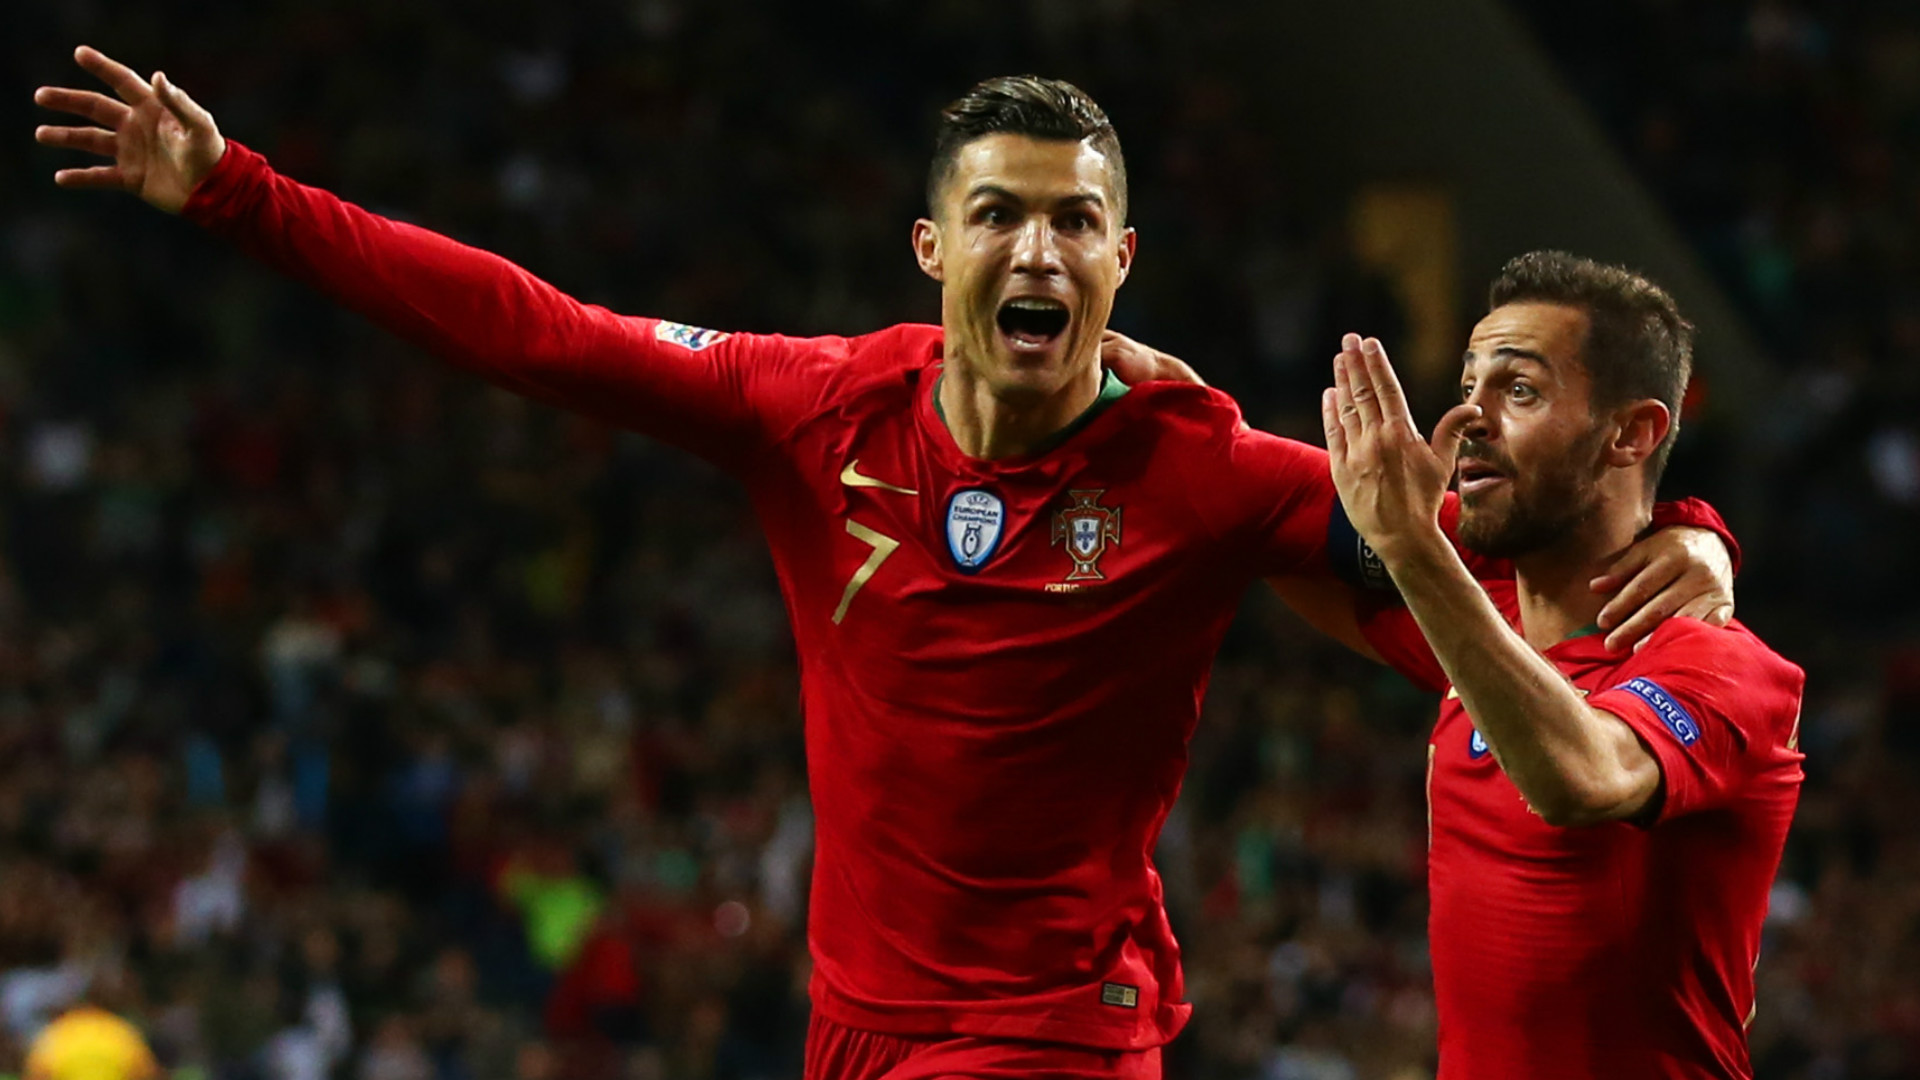 Cristiano Ronaldo célèbre son triplé face à la Suisse en Nations League